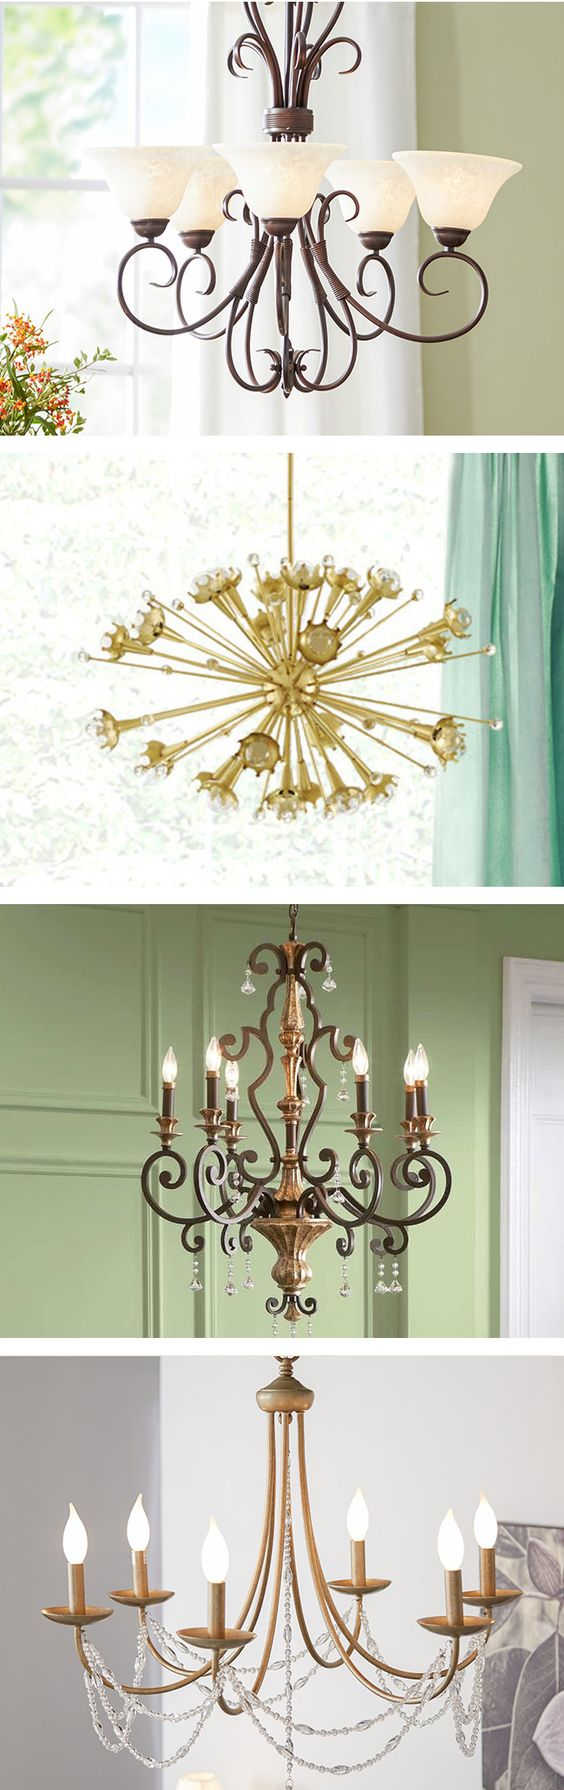 statement lighting. statement lighting - gorgeous chandeliers #lighting #inspiration